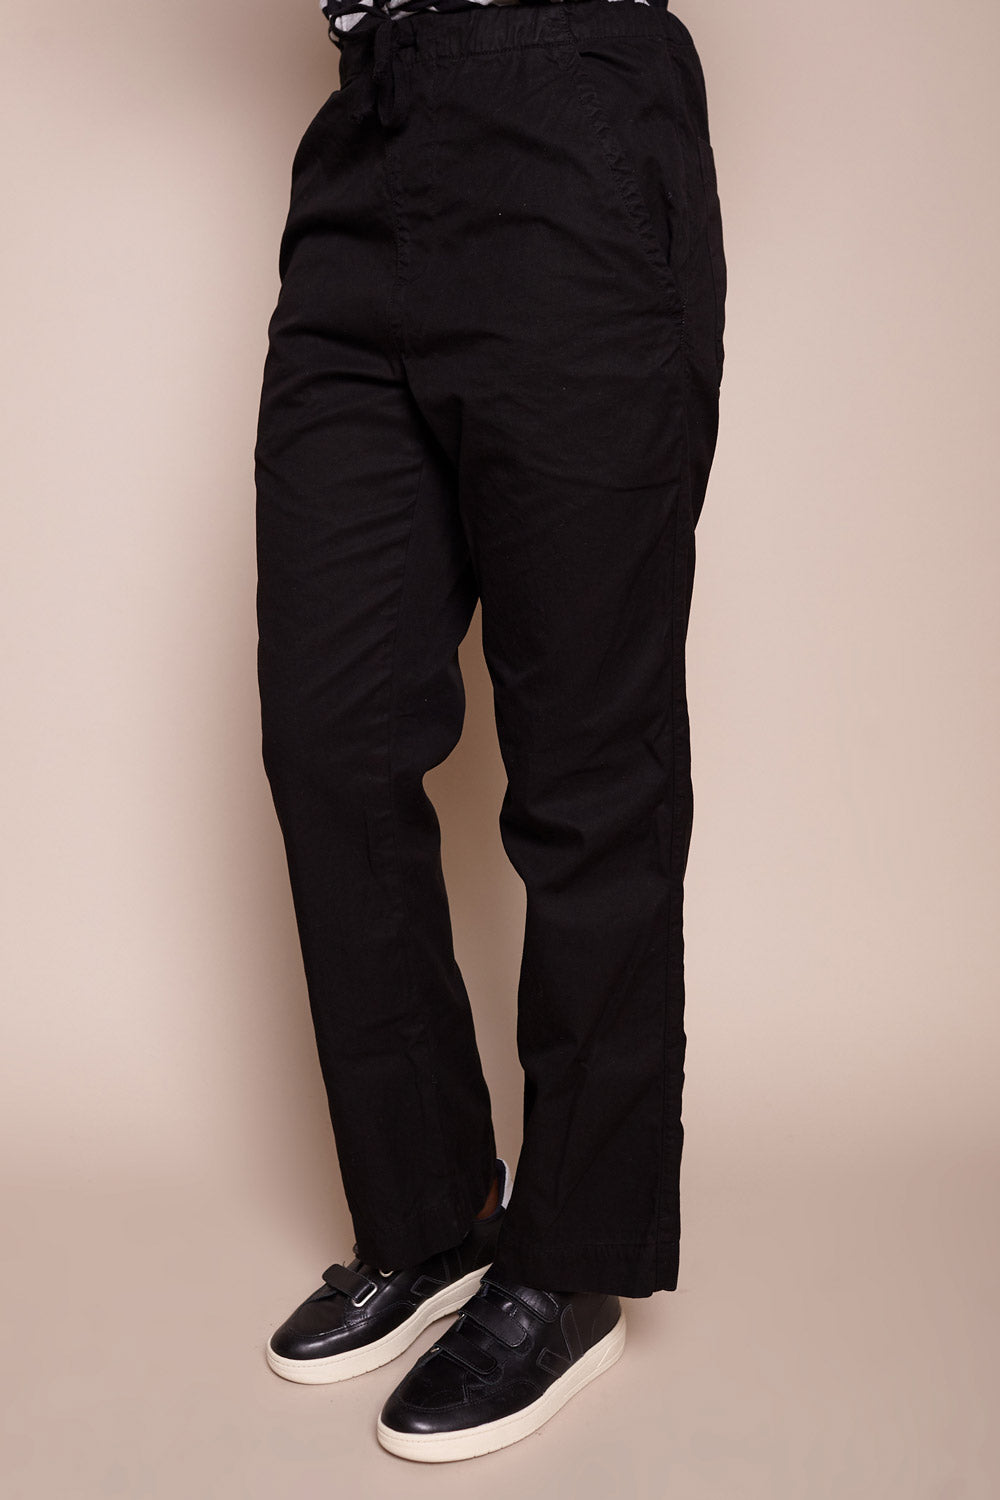 Comfort Chino in Black